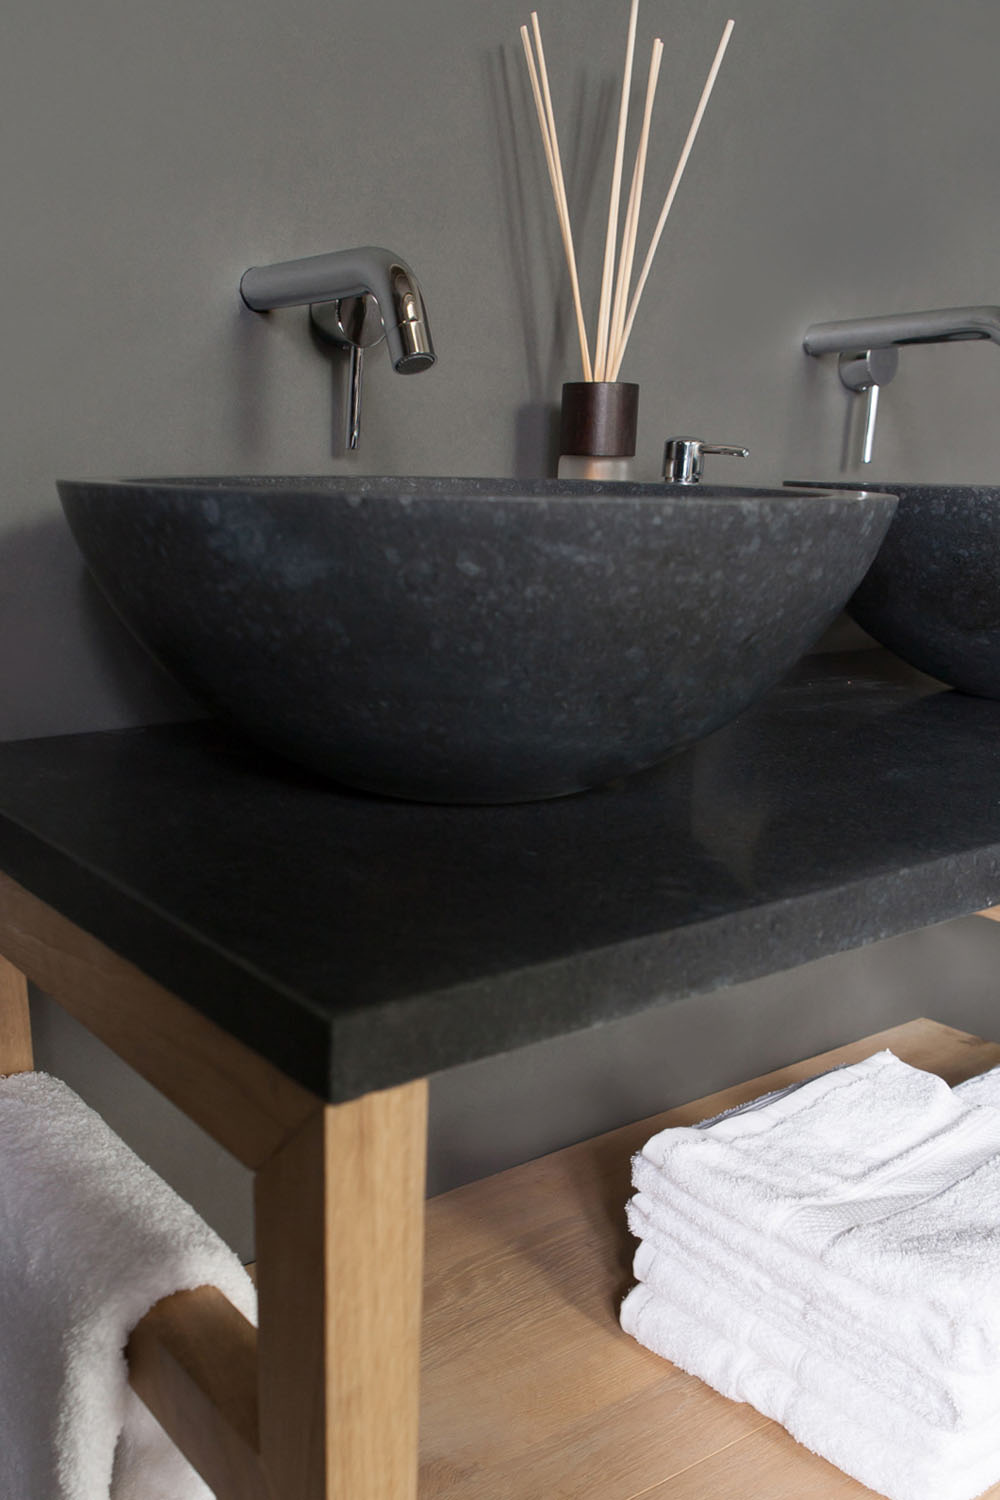 naturstein aufsatzwaschbecken roma granit 40 cm spa ambiente. Black Bedroom Furniture Sets. Home Design Ideas